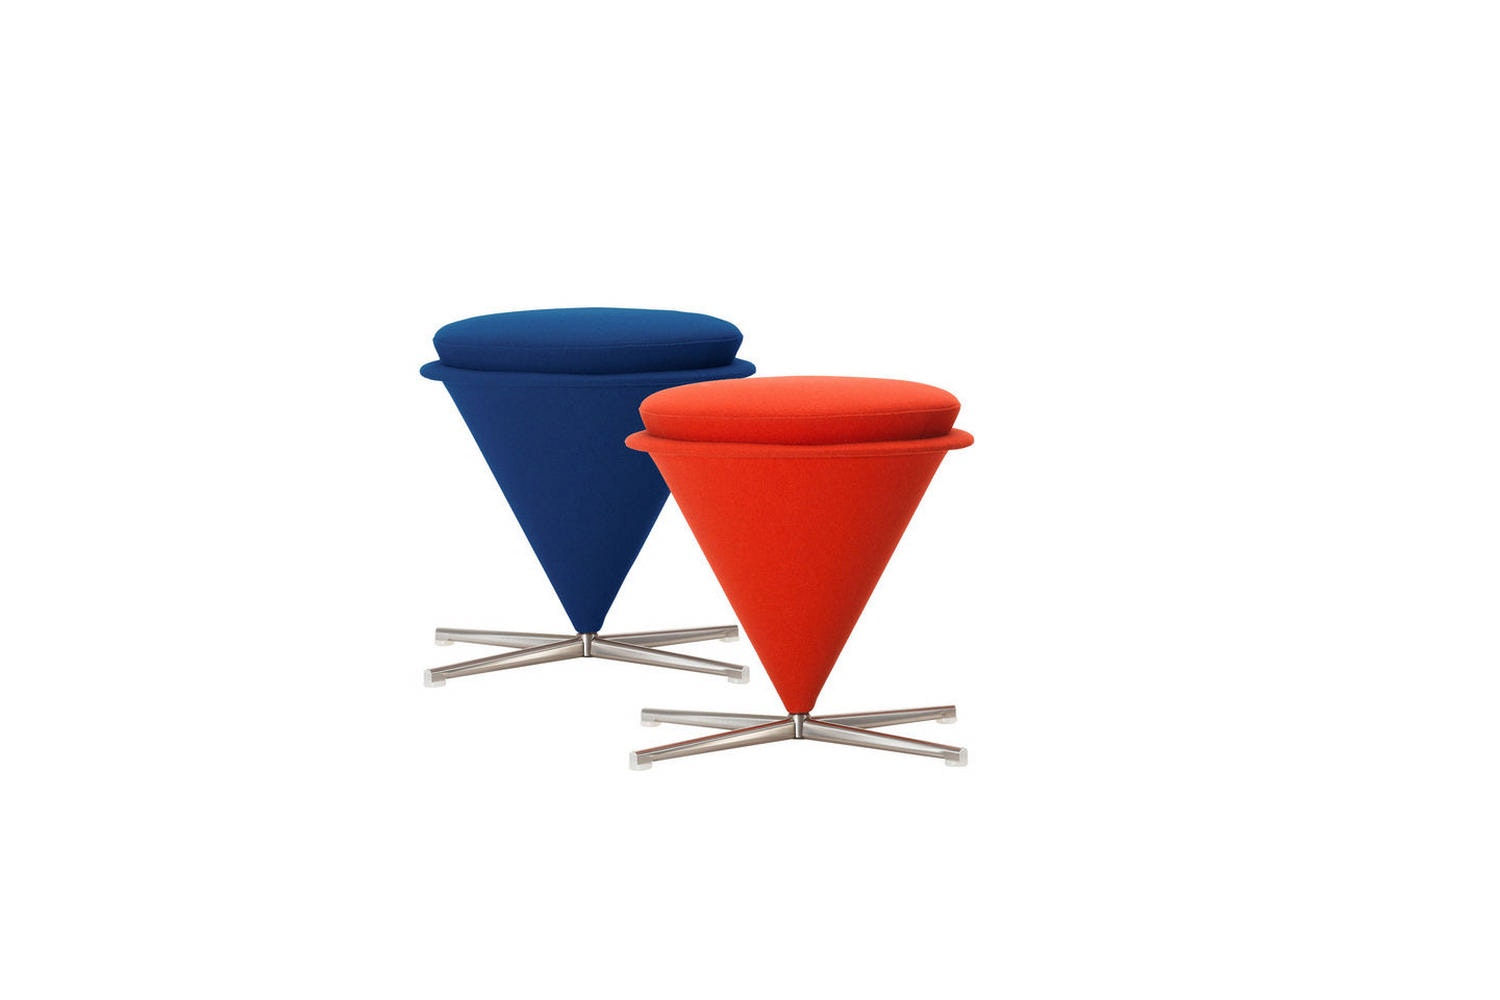 Cone Stool by Verner Panton for Vitra